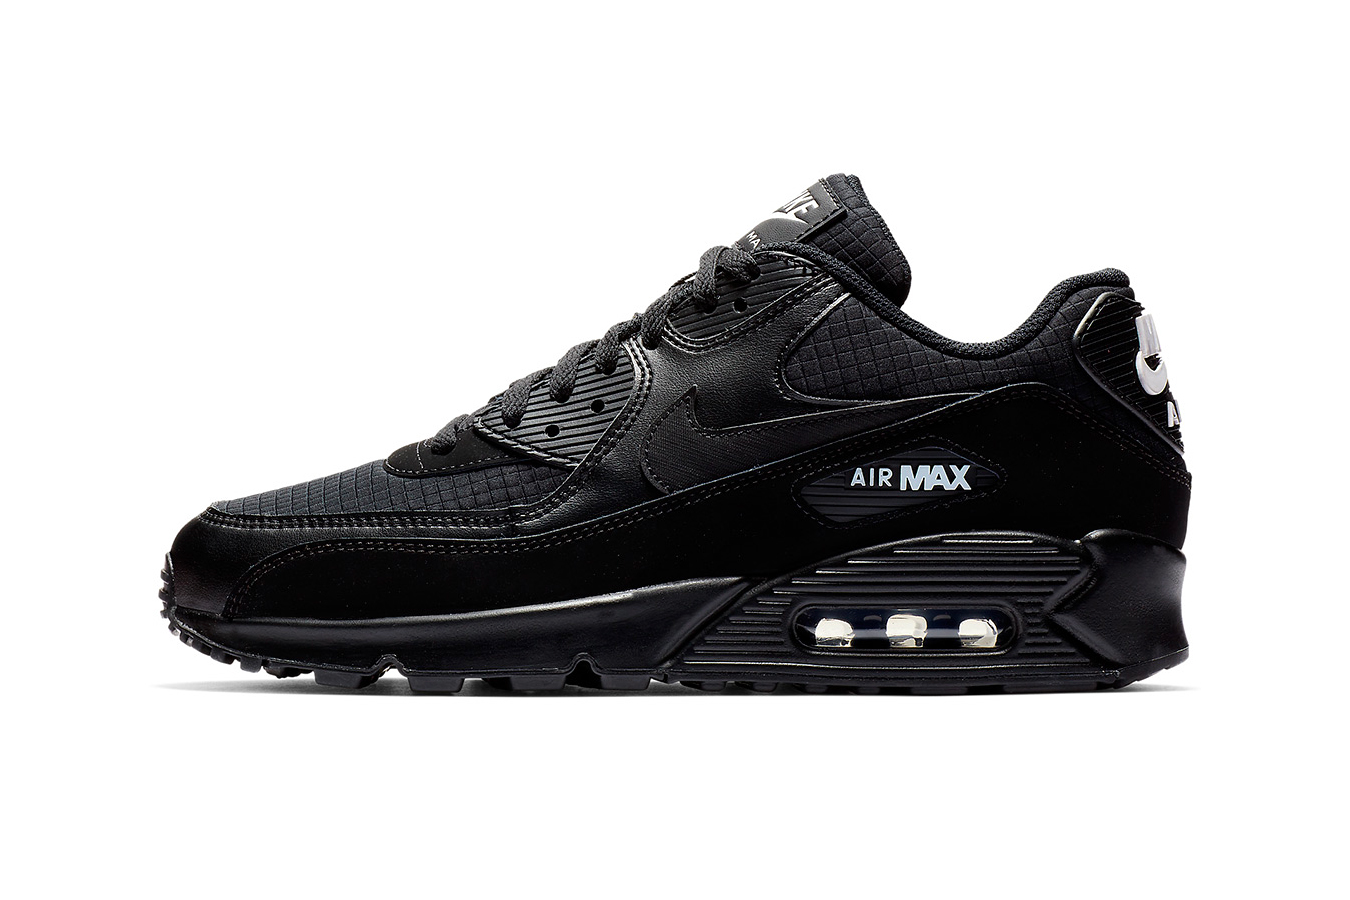 nike sir max essential